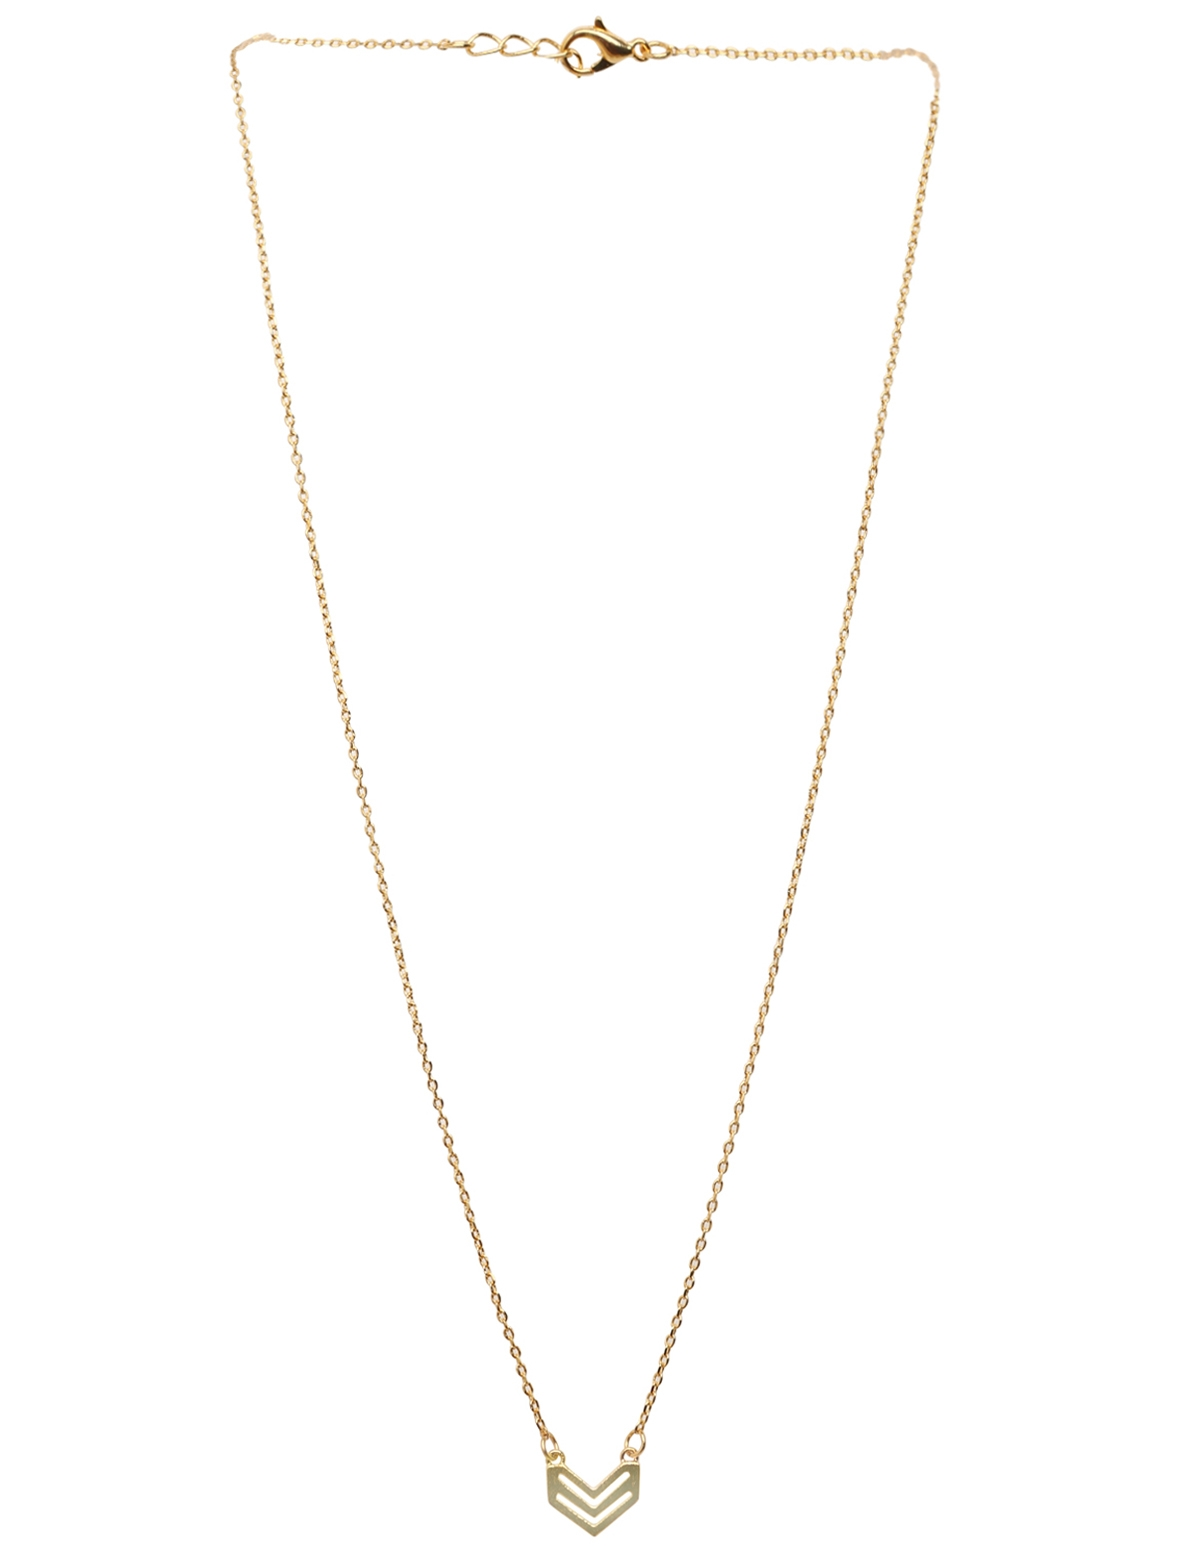 Image of Arrow Shaped Chain Necklace in Gold